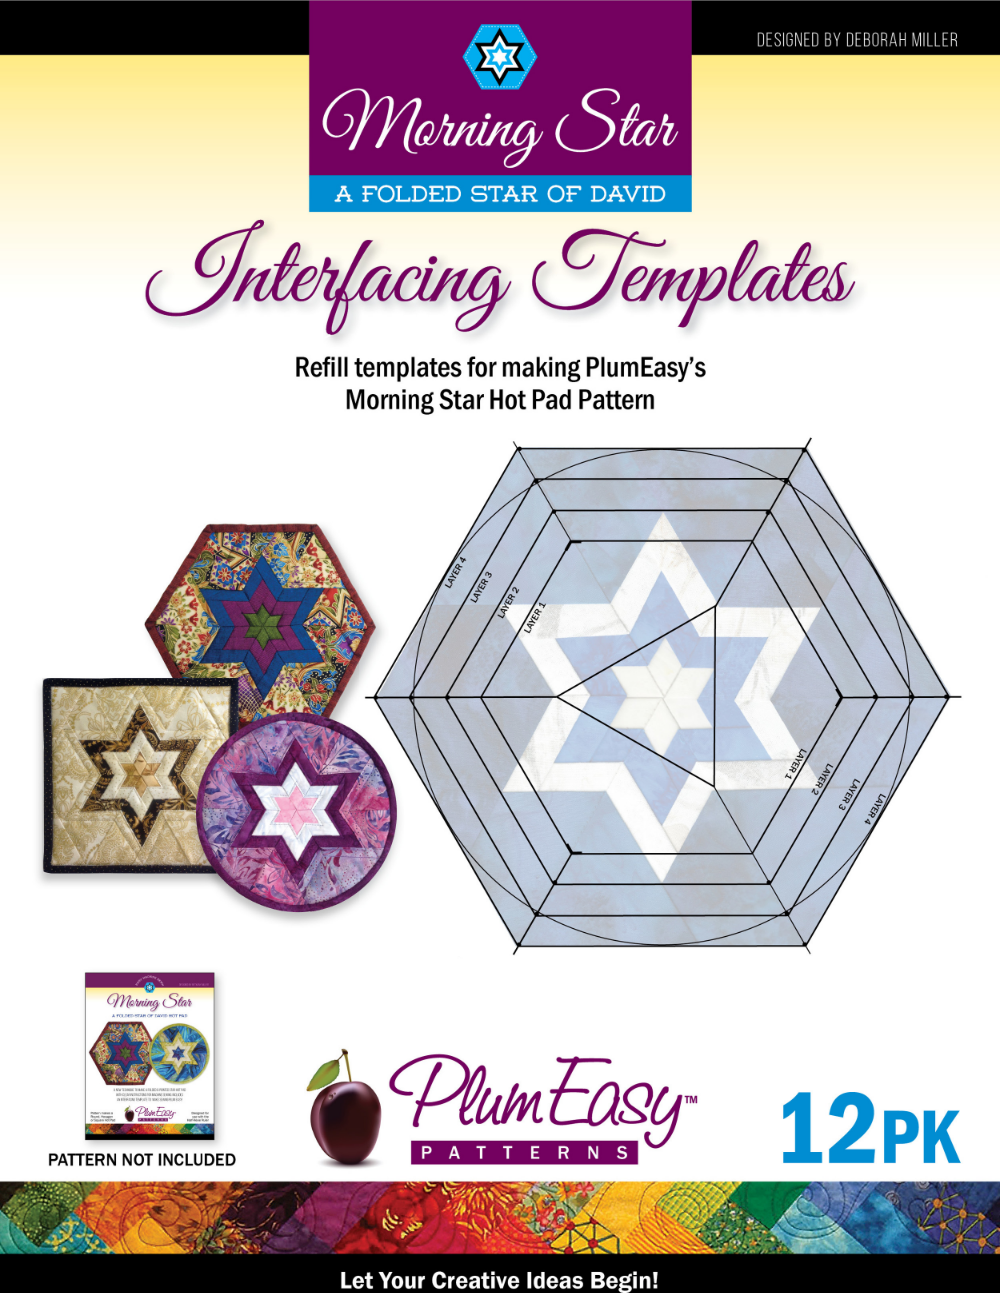 Morning Star Interfacing Templates